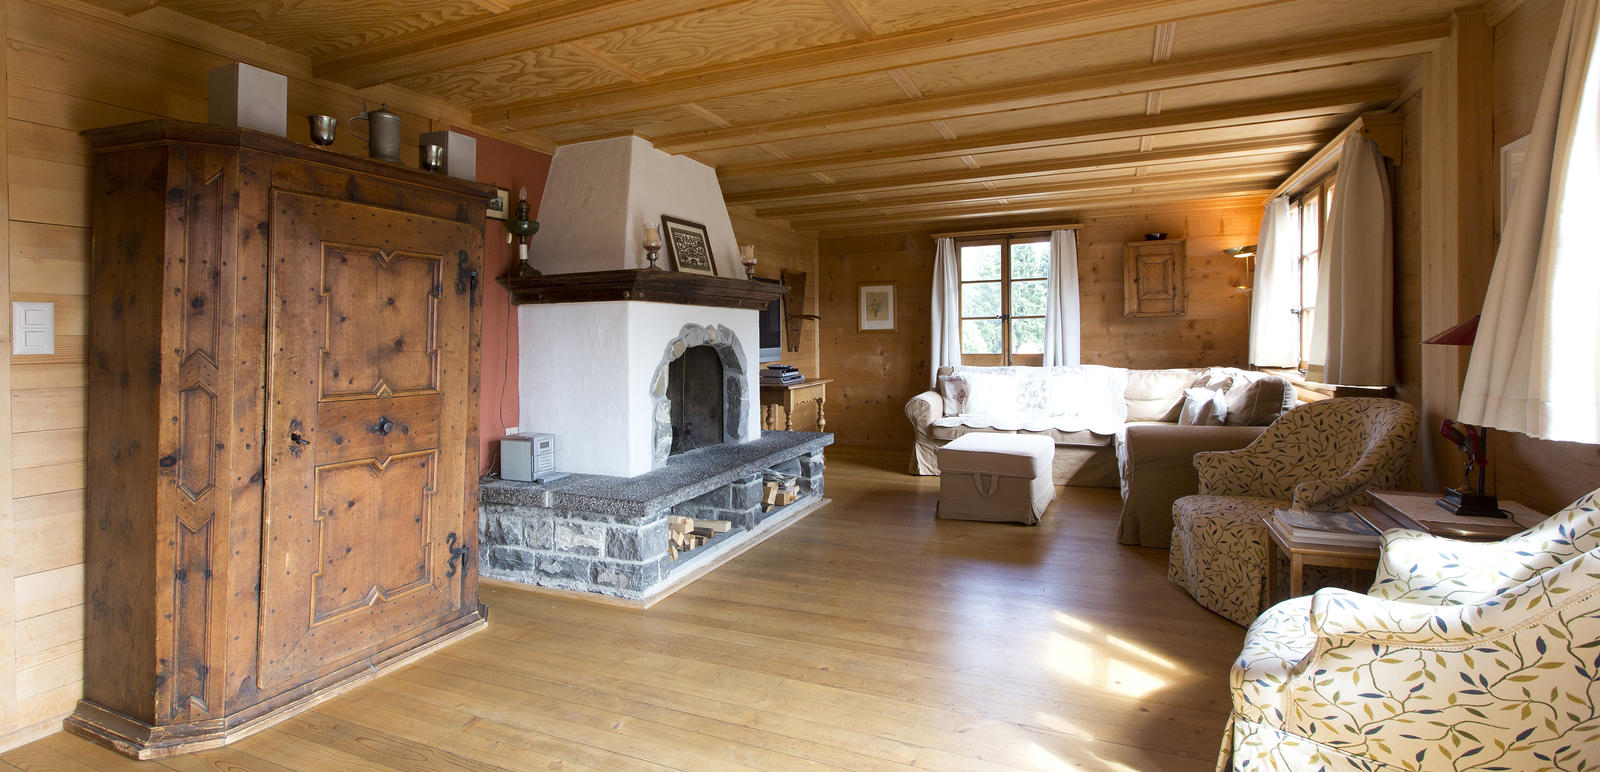 Chalet Wohnzimmer Boutique Hotel Alpenrose Chalet 200m From The Hotel